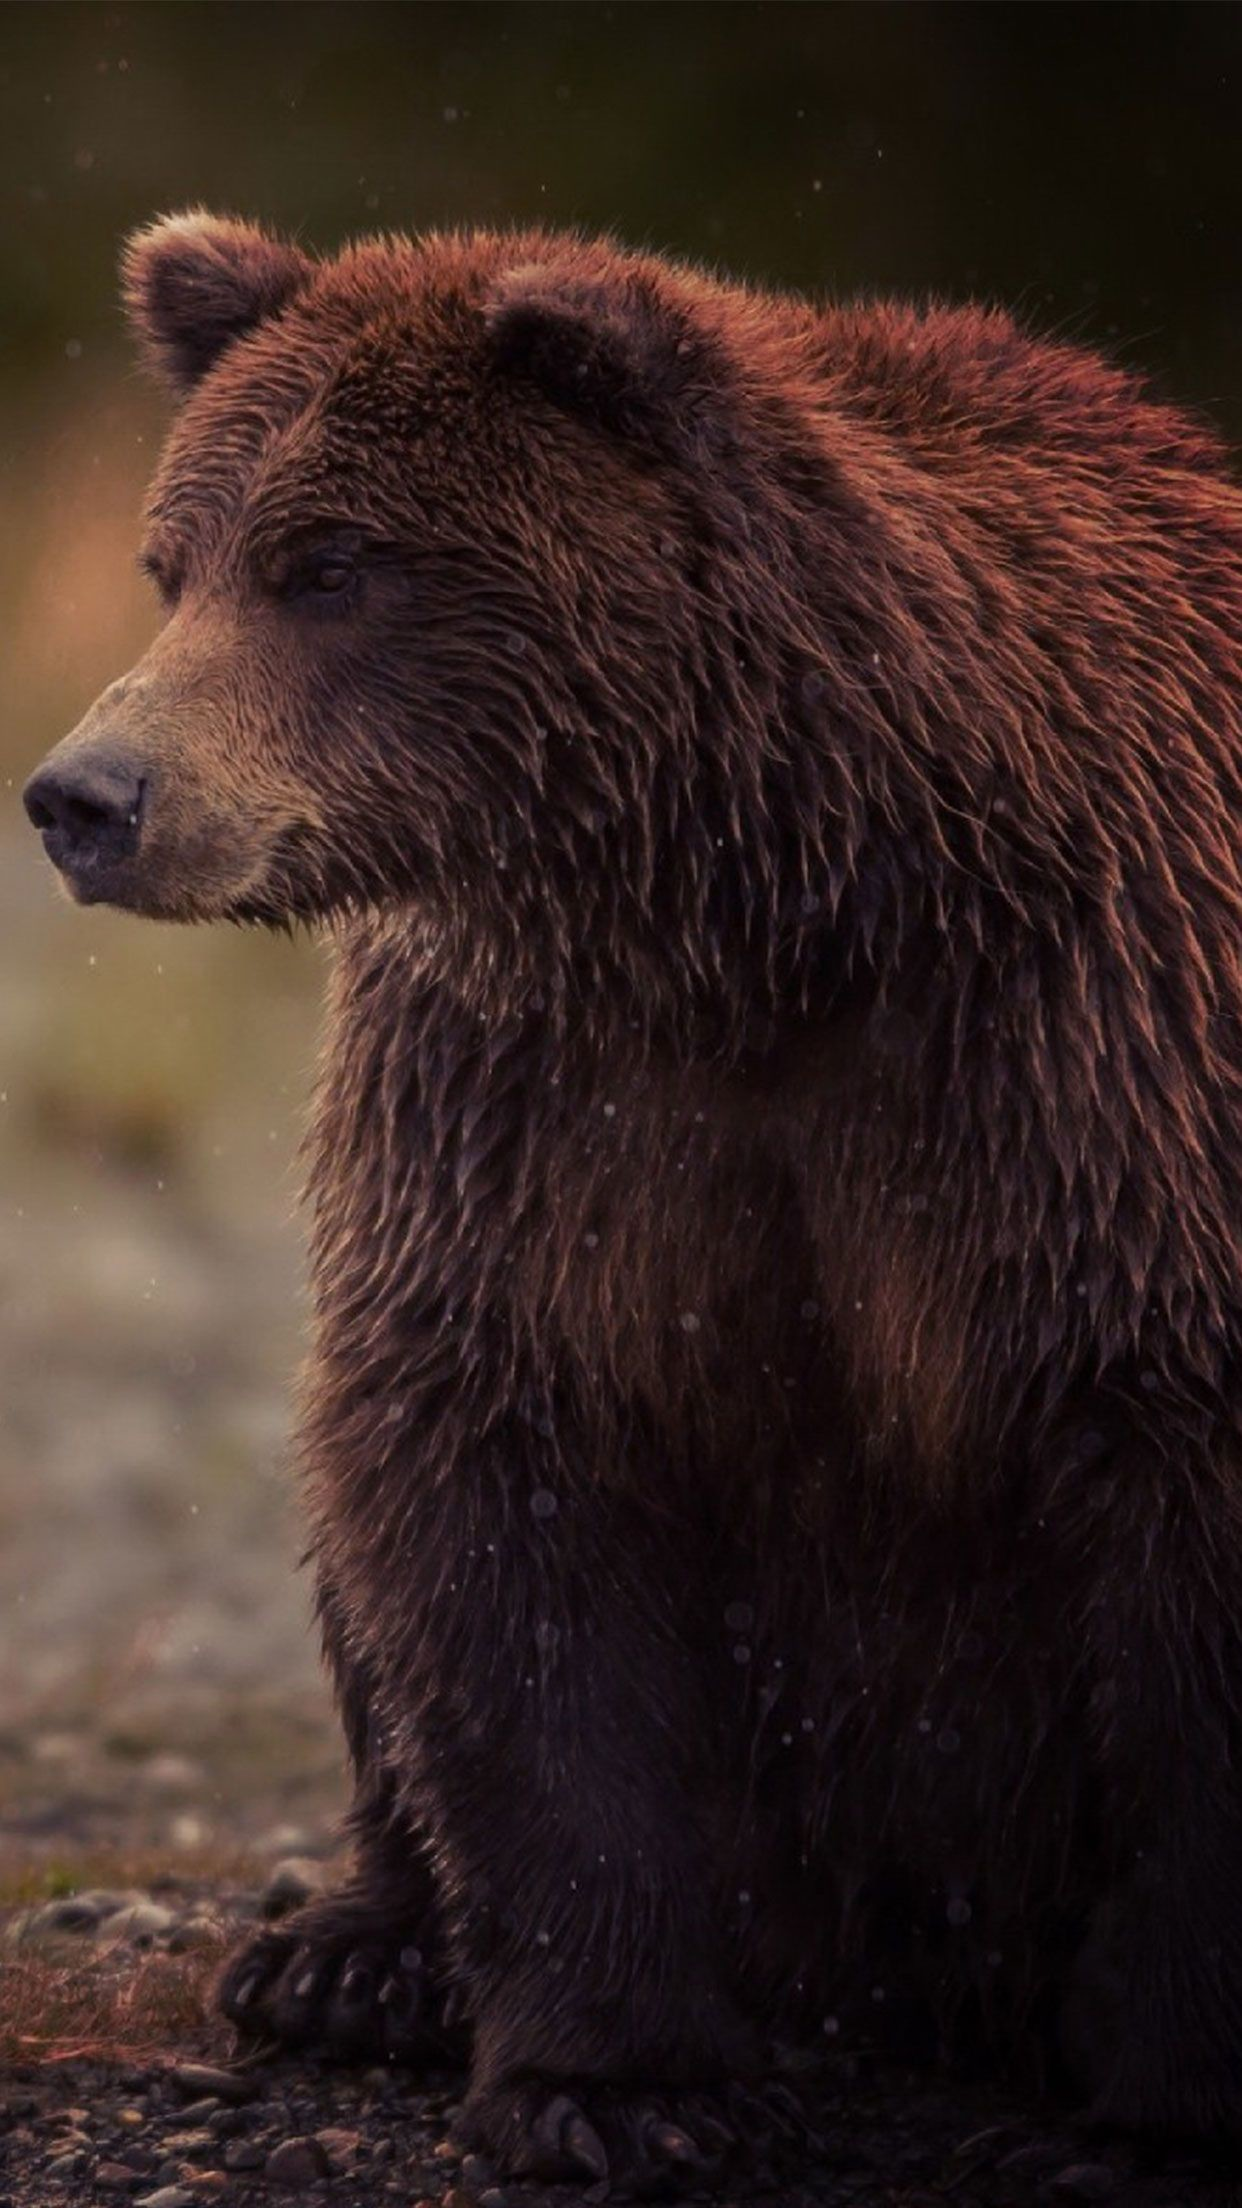 1242x2208 Brown Bear animal wallpaper #Iphone #android #bear #animal #wallpaper check  out more on wallzapp.com